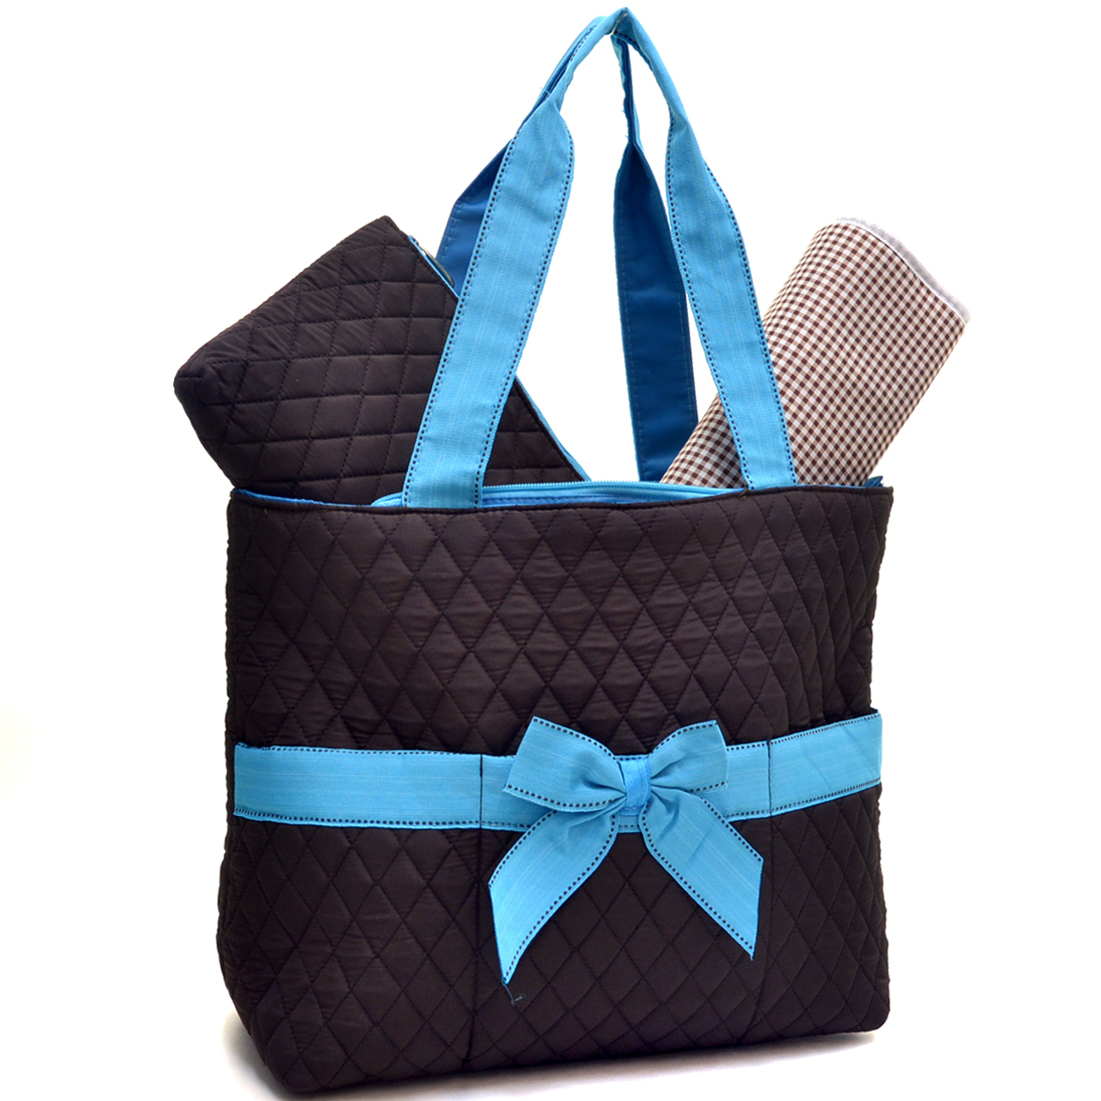 Rosen Blue™ Quilted Front Pouch Tote Bag with Removable Bow